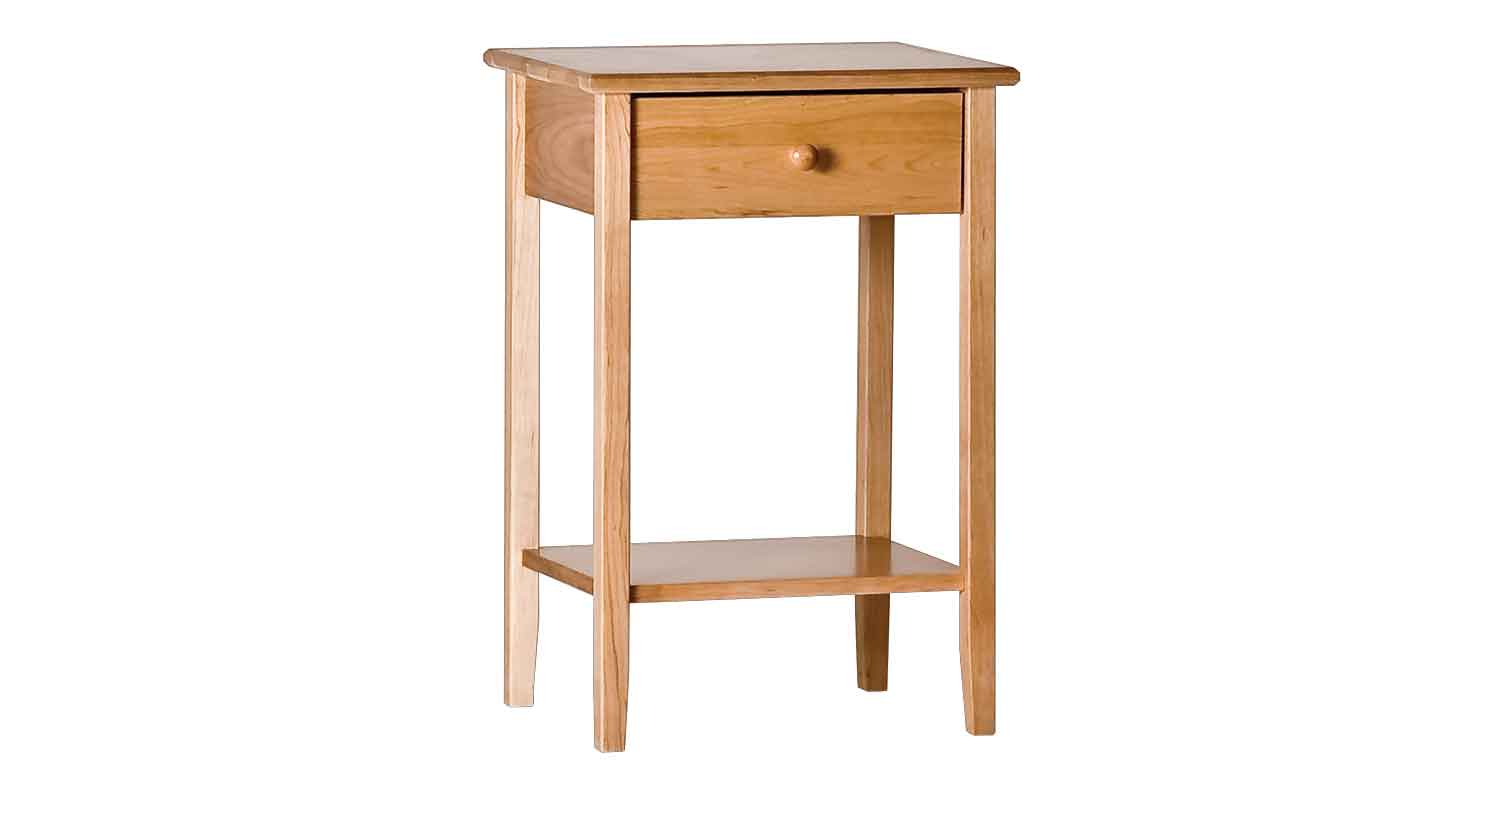 circle furniture shaker tall side table accent tables narrow small mirror sets outdoor storage cabinet decorative corners diy antique with fold down sides round nightstand